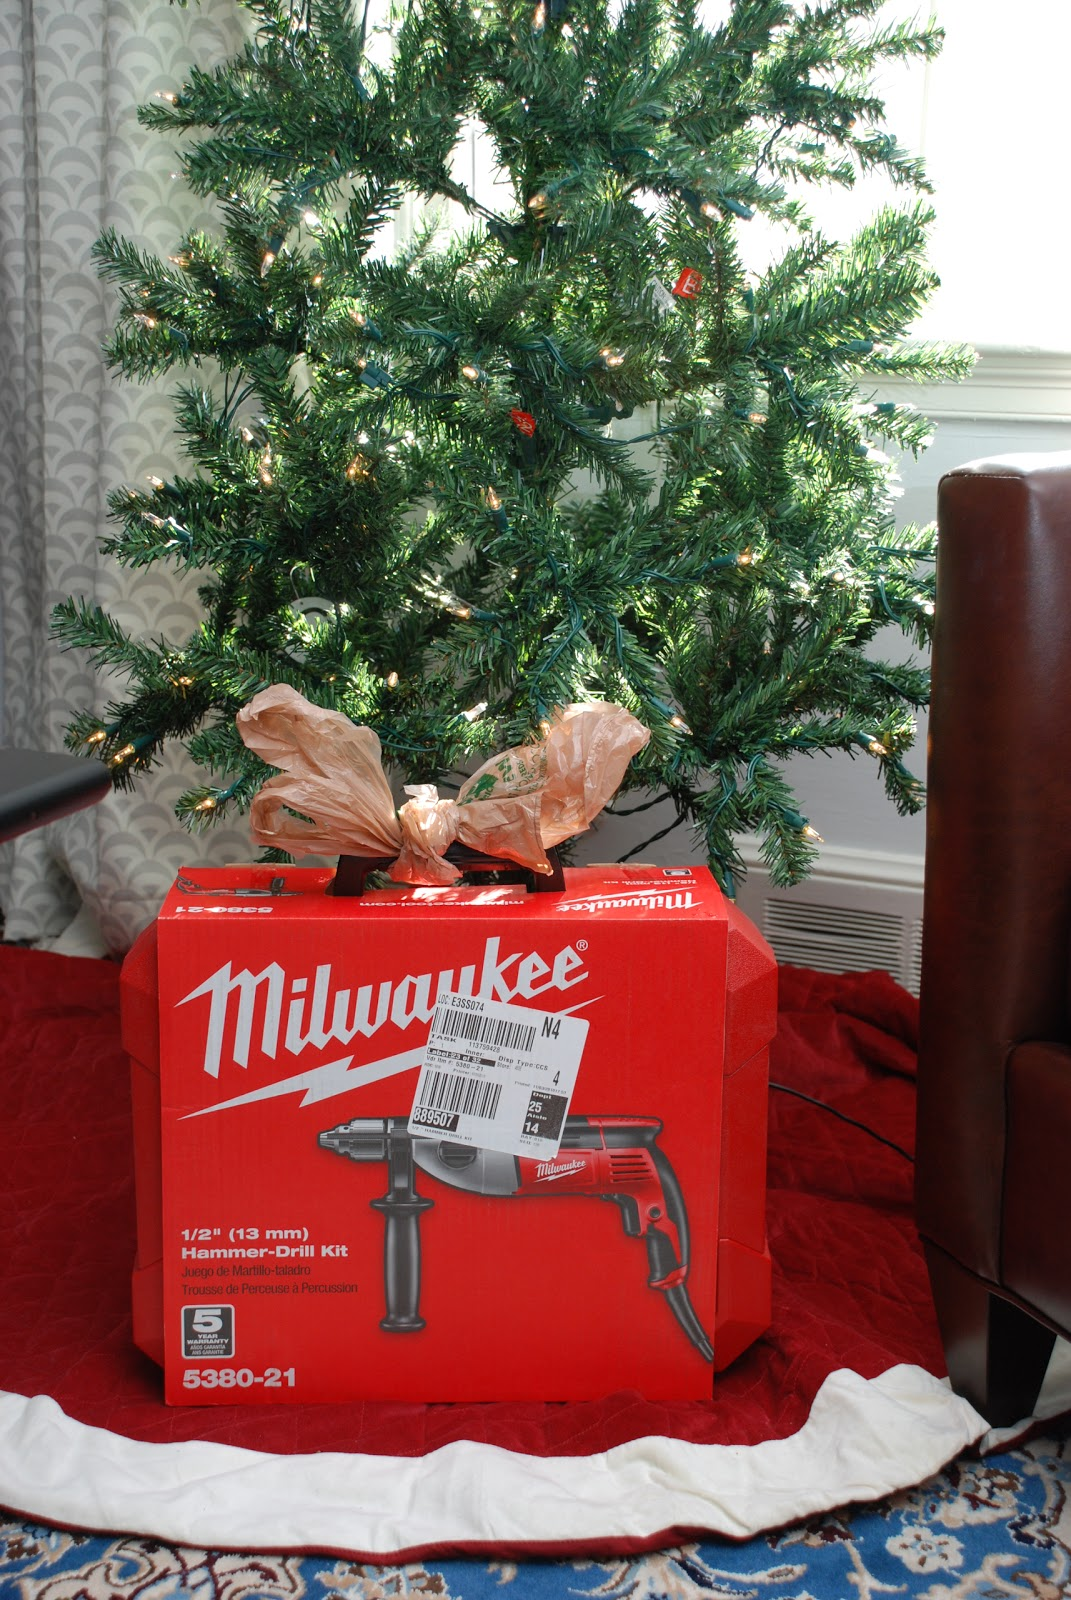 Our little beehive becoming handy through home renovation cooking - A Milwaukee 1 2 Hammer Drill Complete With A Bow Fashioned From A Home Depot Shopping Bag